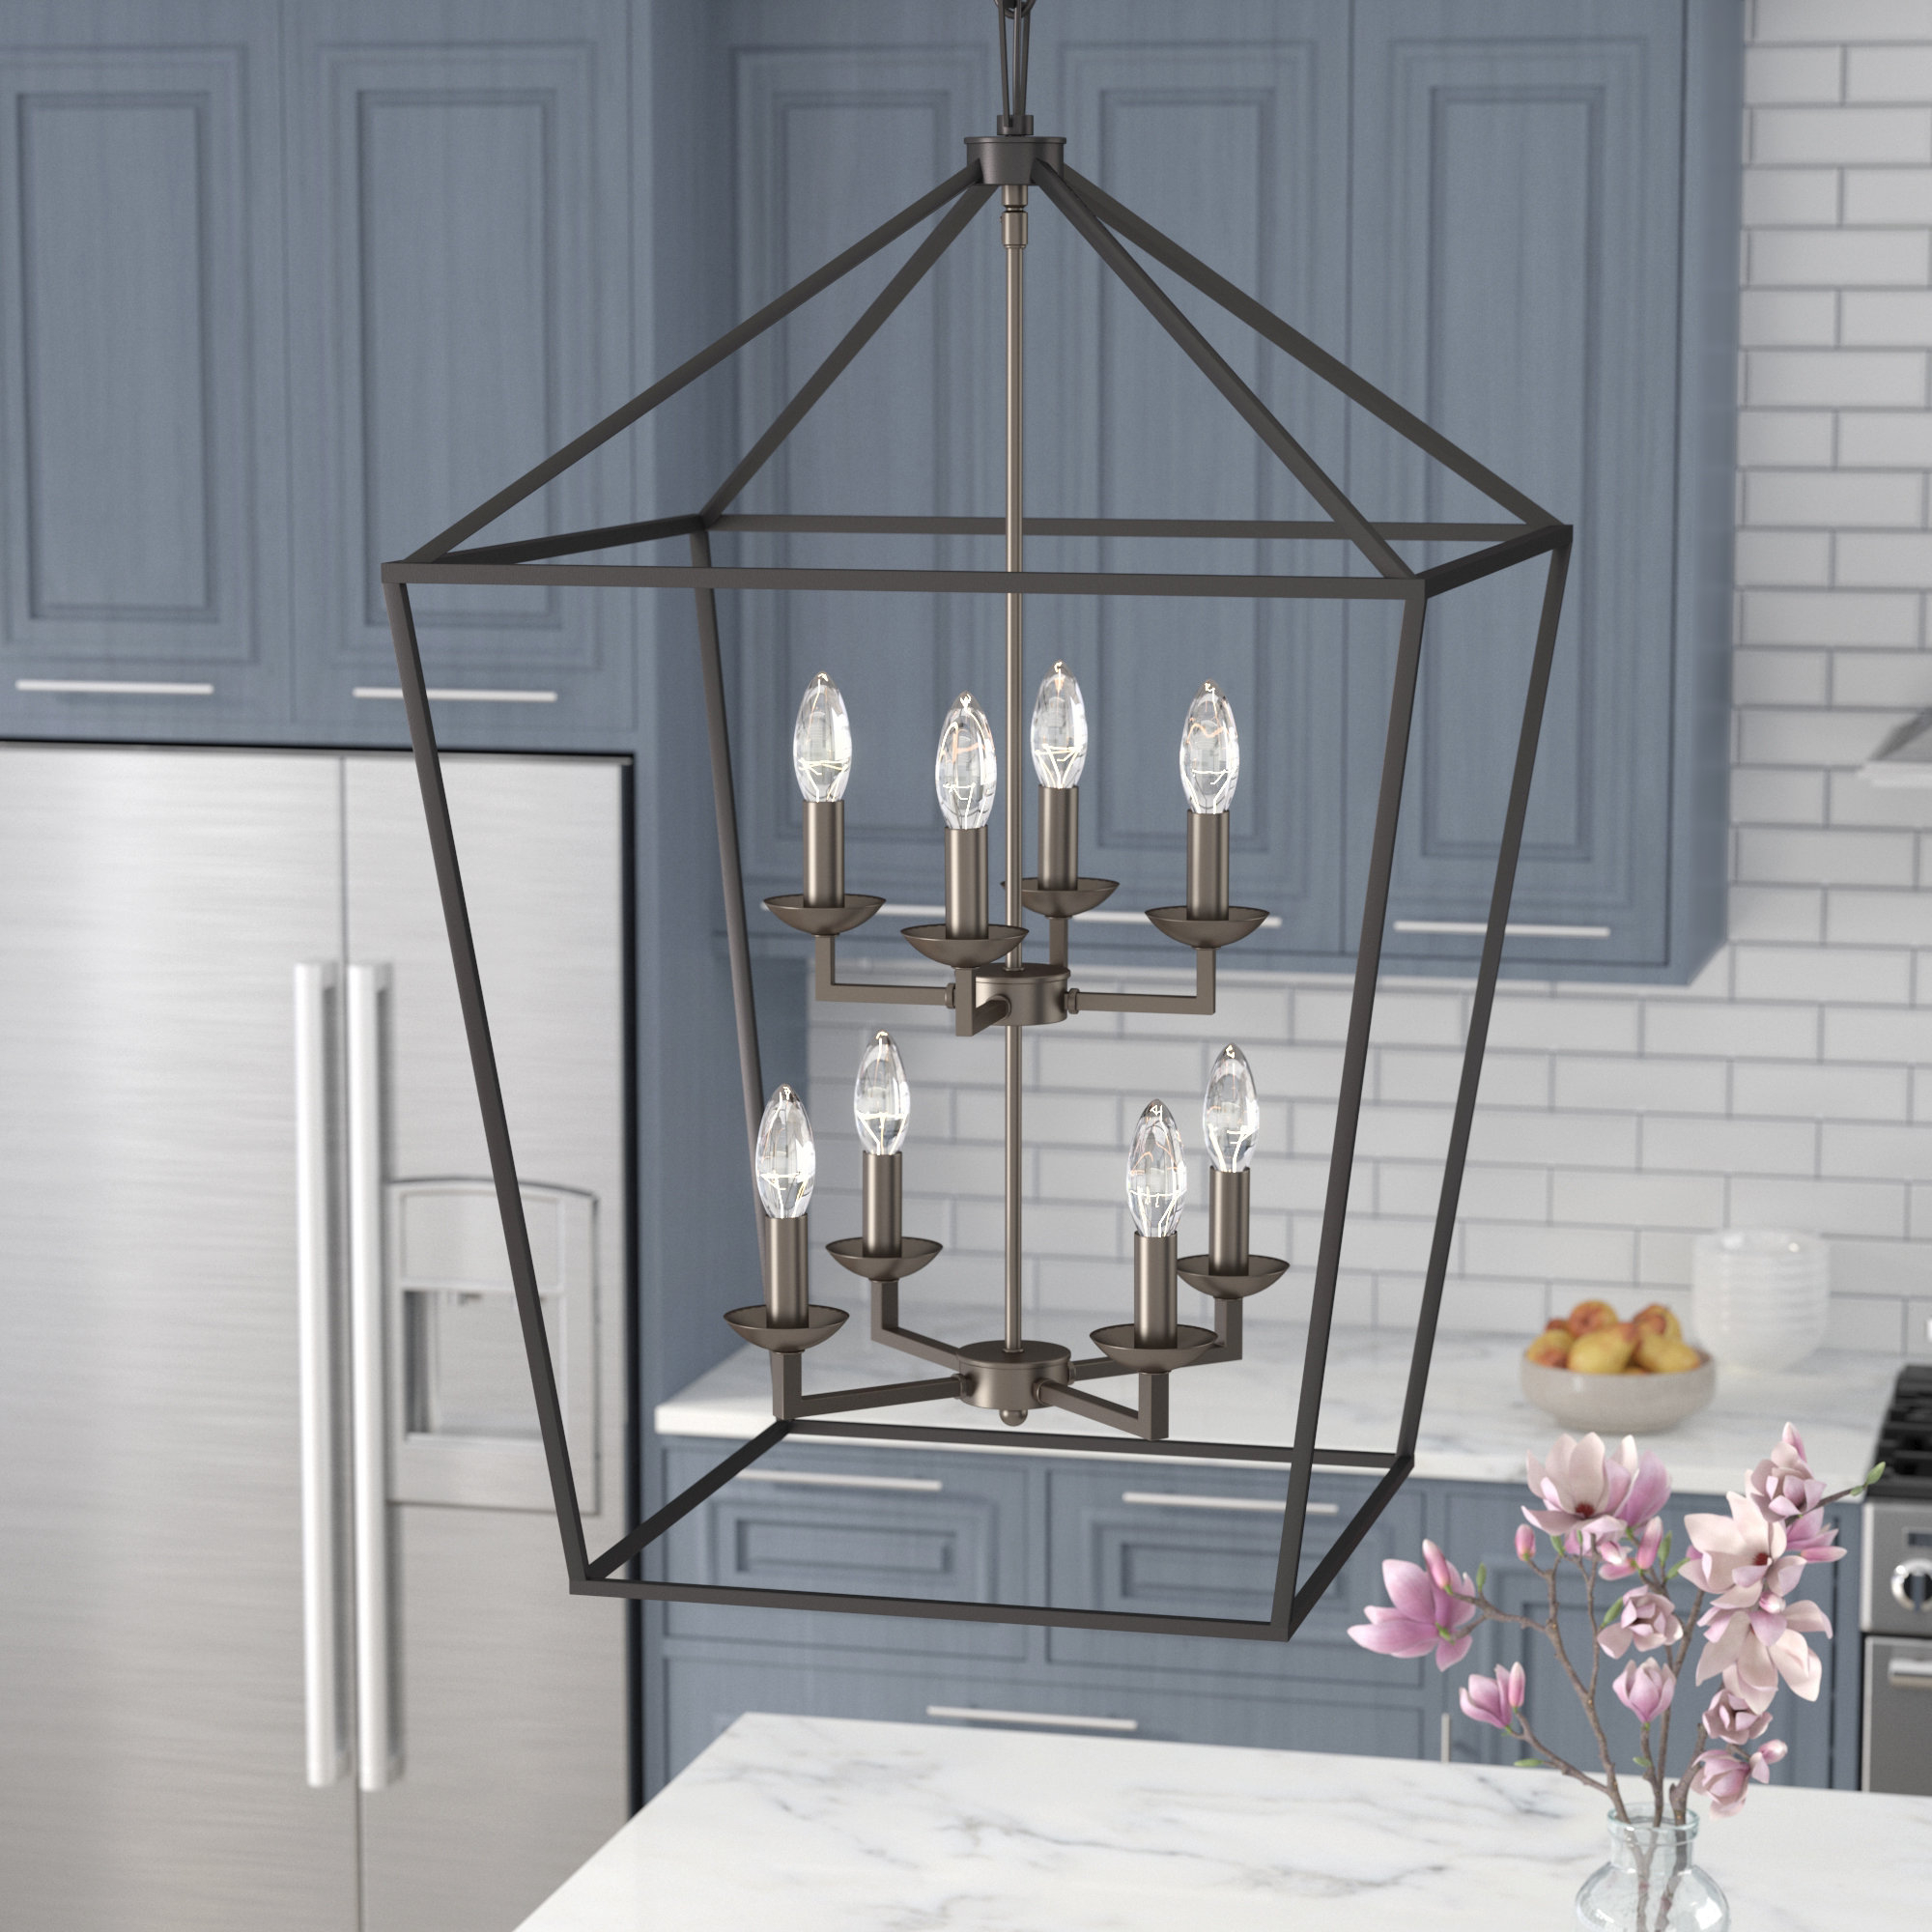 Most Current Carmen 8 Light Lantern Tiered Pendants Inside Carmen 8 Light Lantern Tiered Pendant (View 12 of 20)